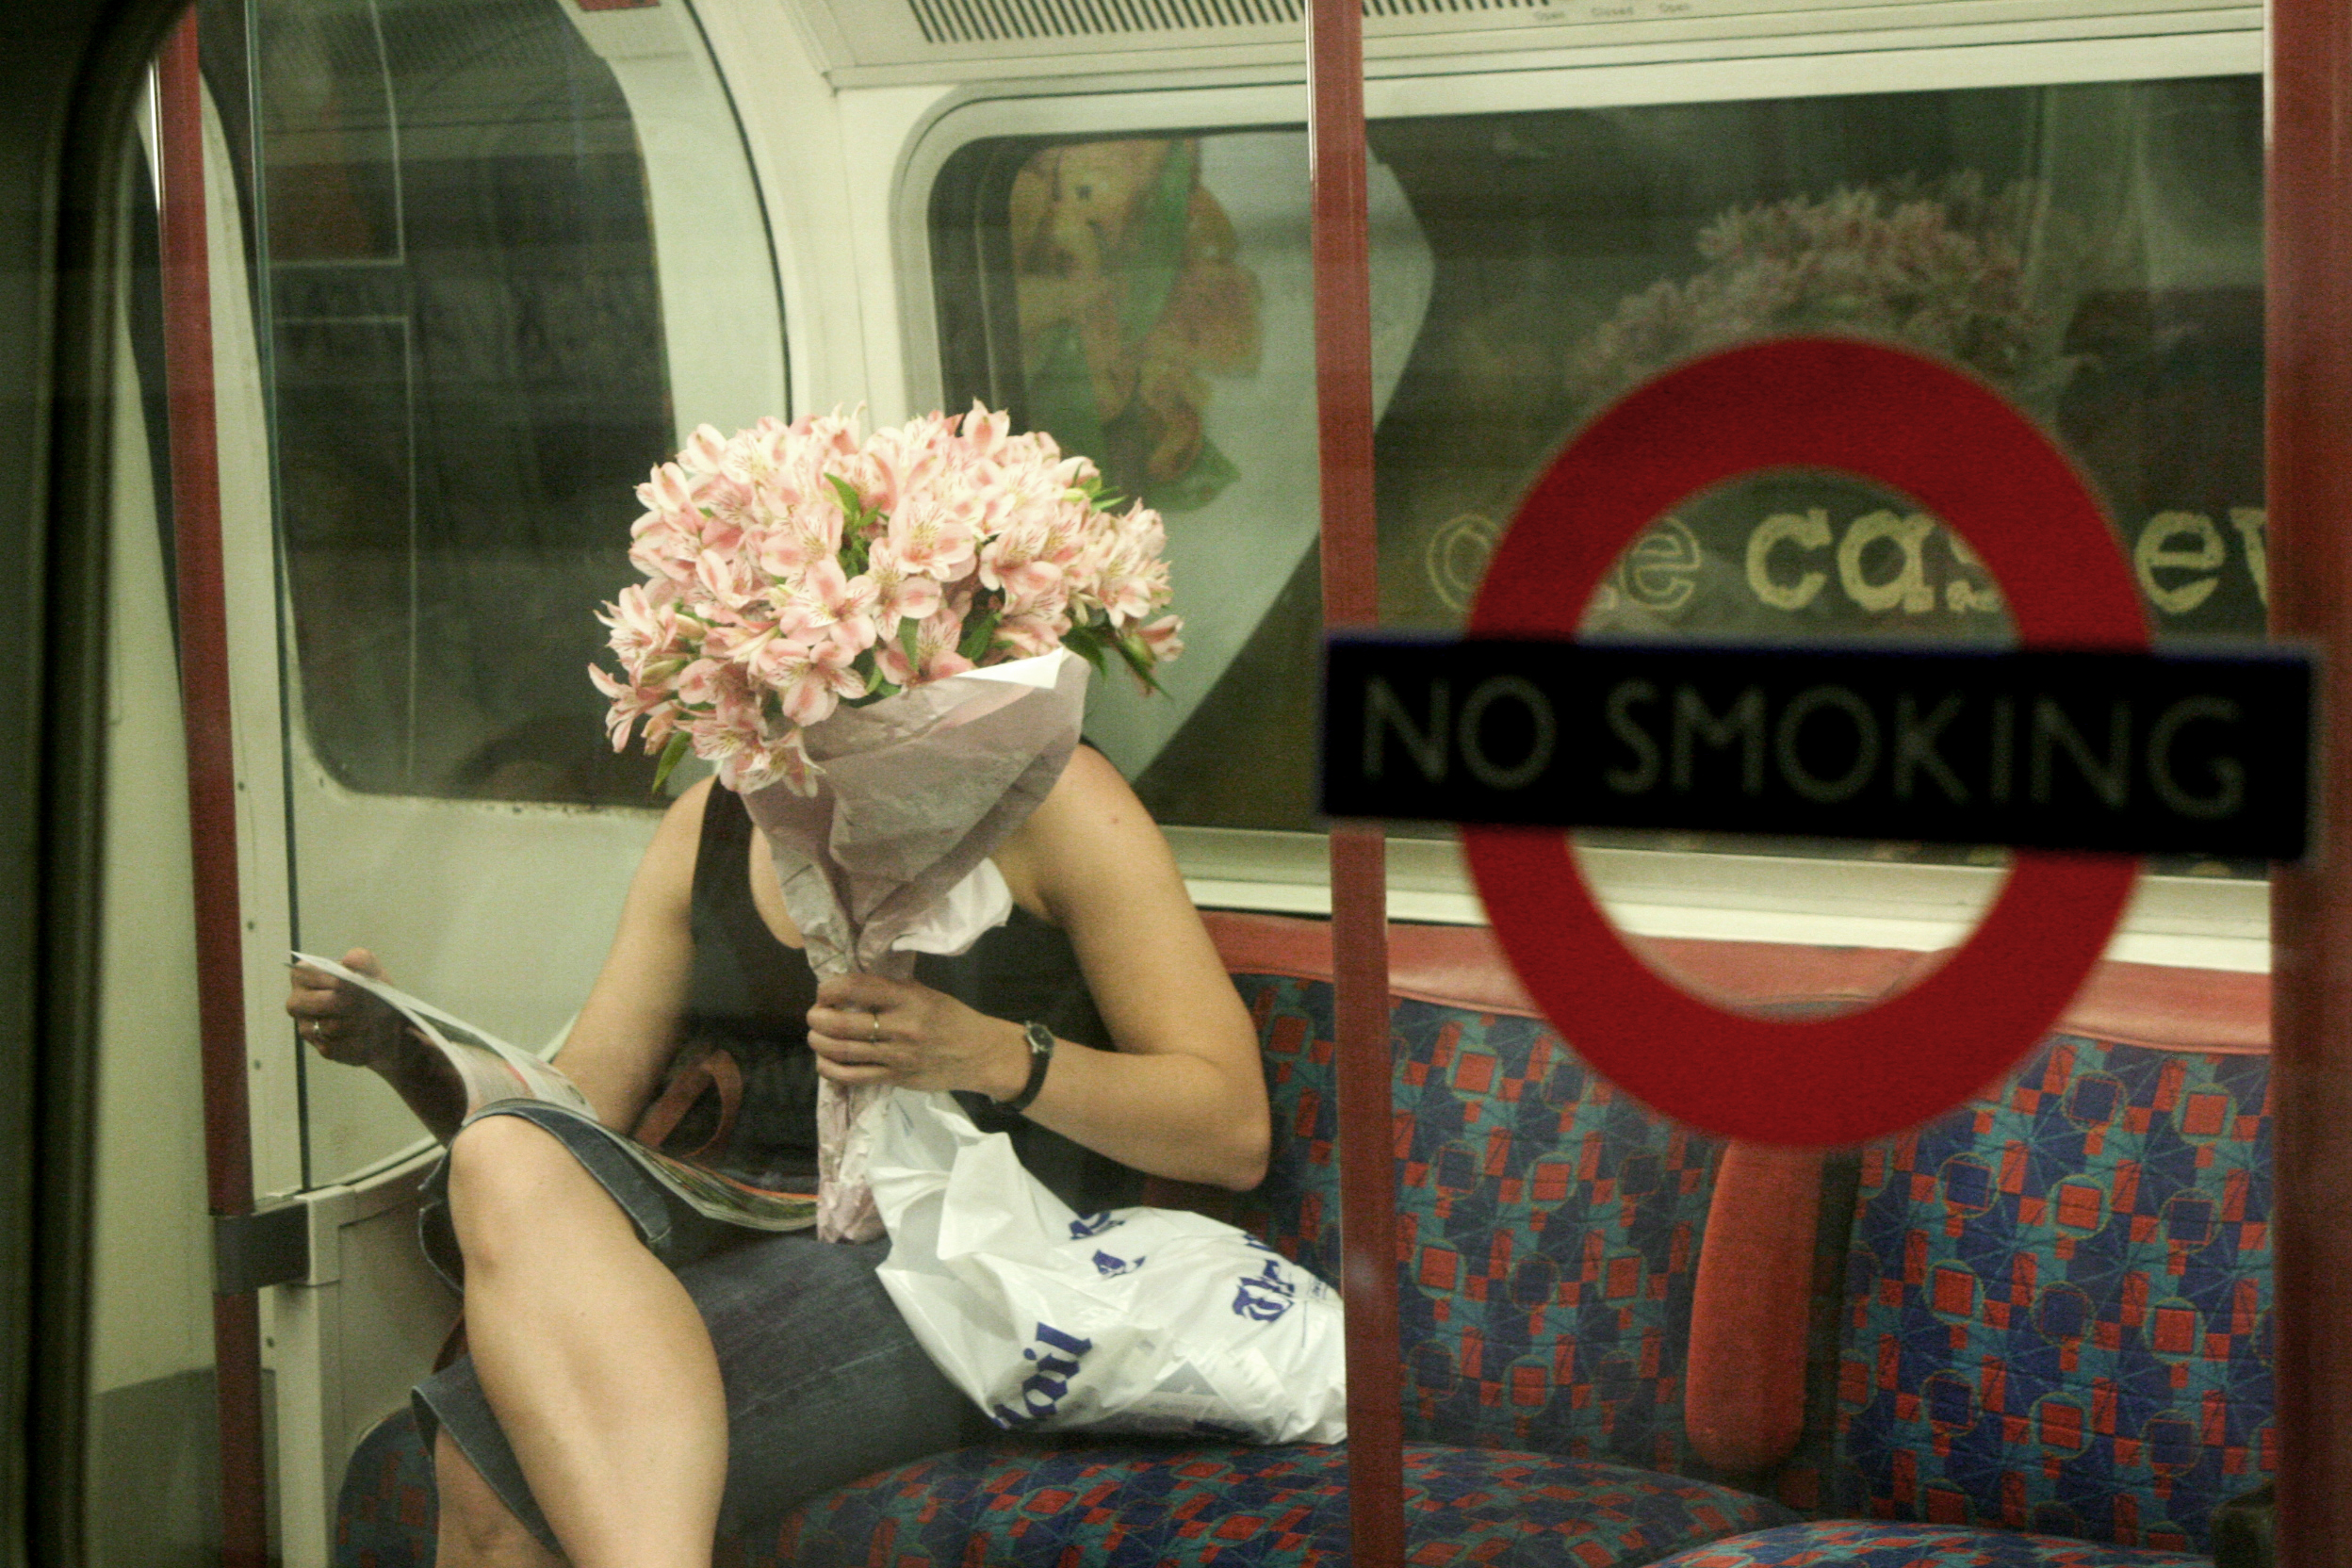 No smoking, London